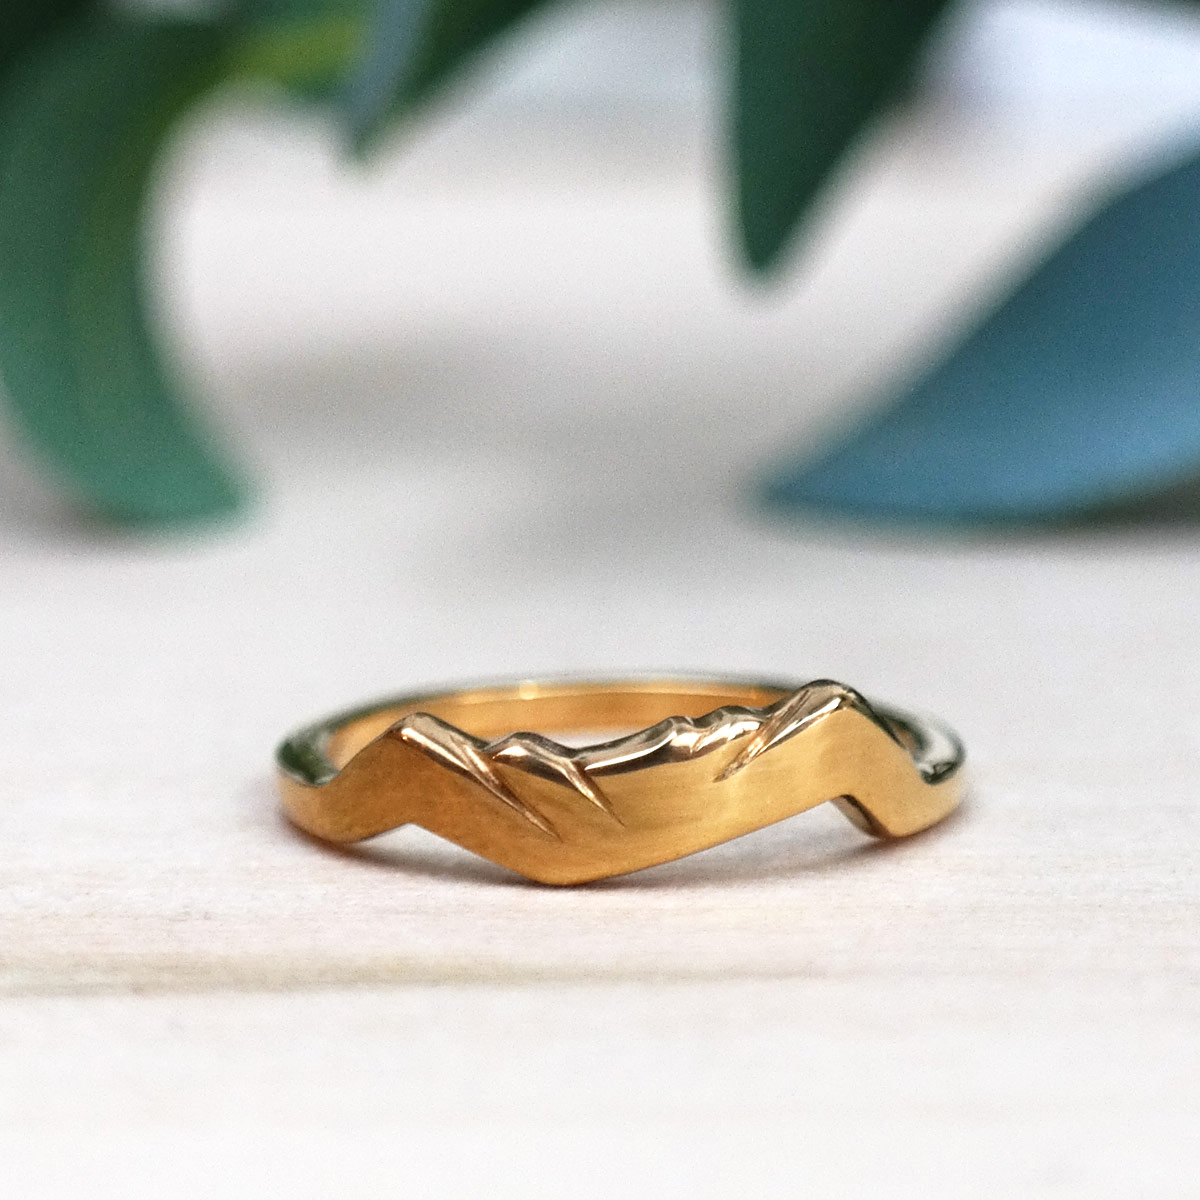 14k gold ring of the appalachian trail